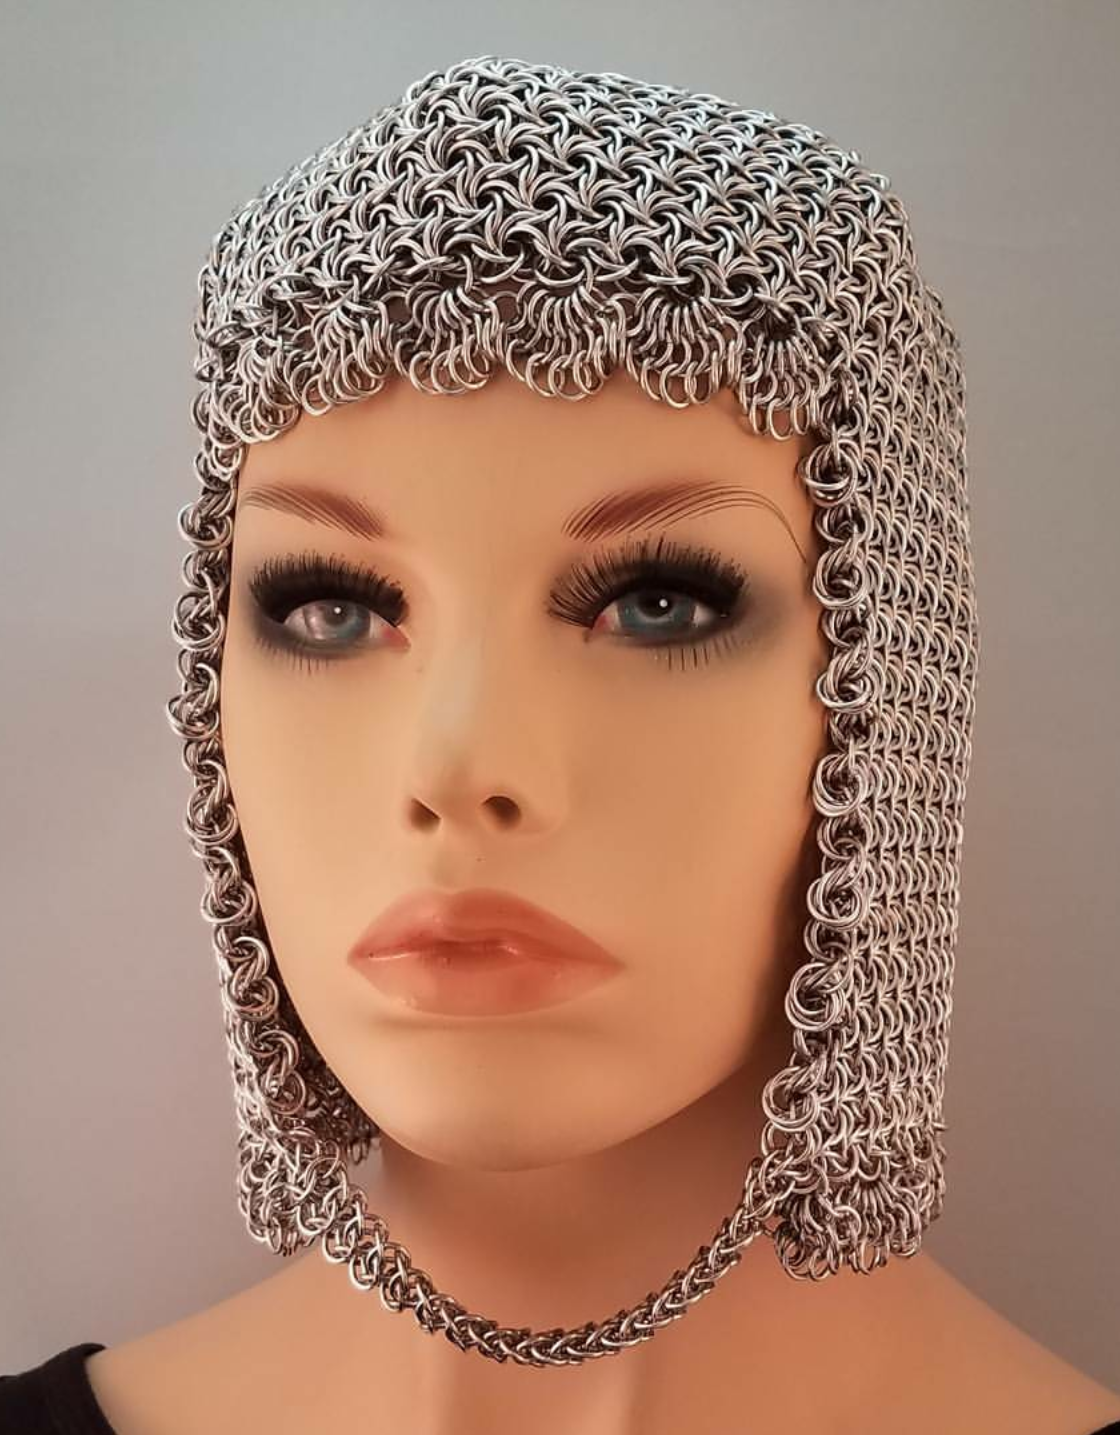 moorish rose chainmaille coif by Lisa Ellis